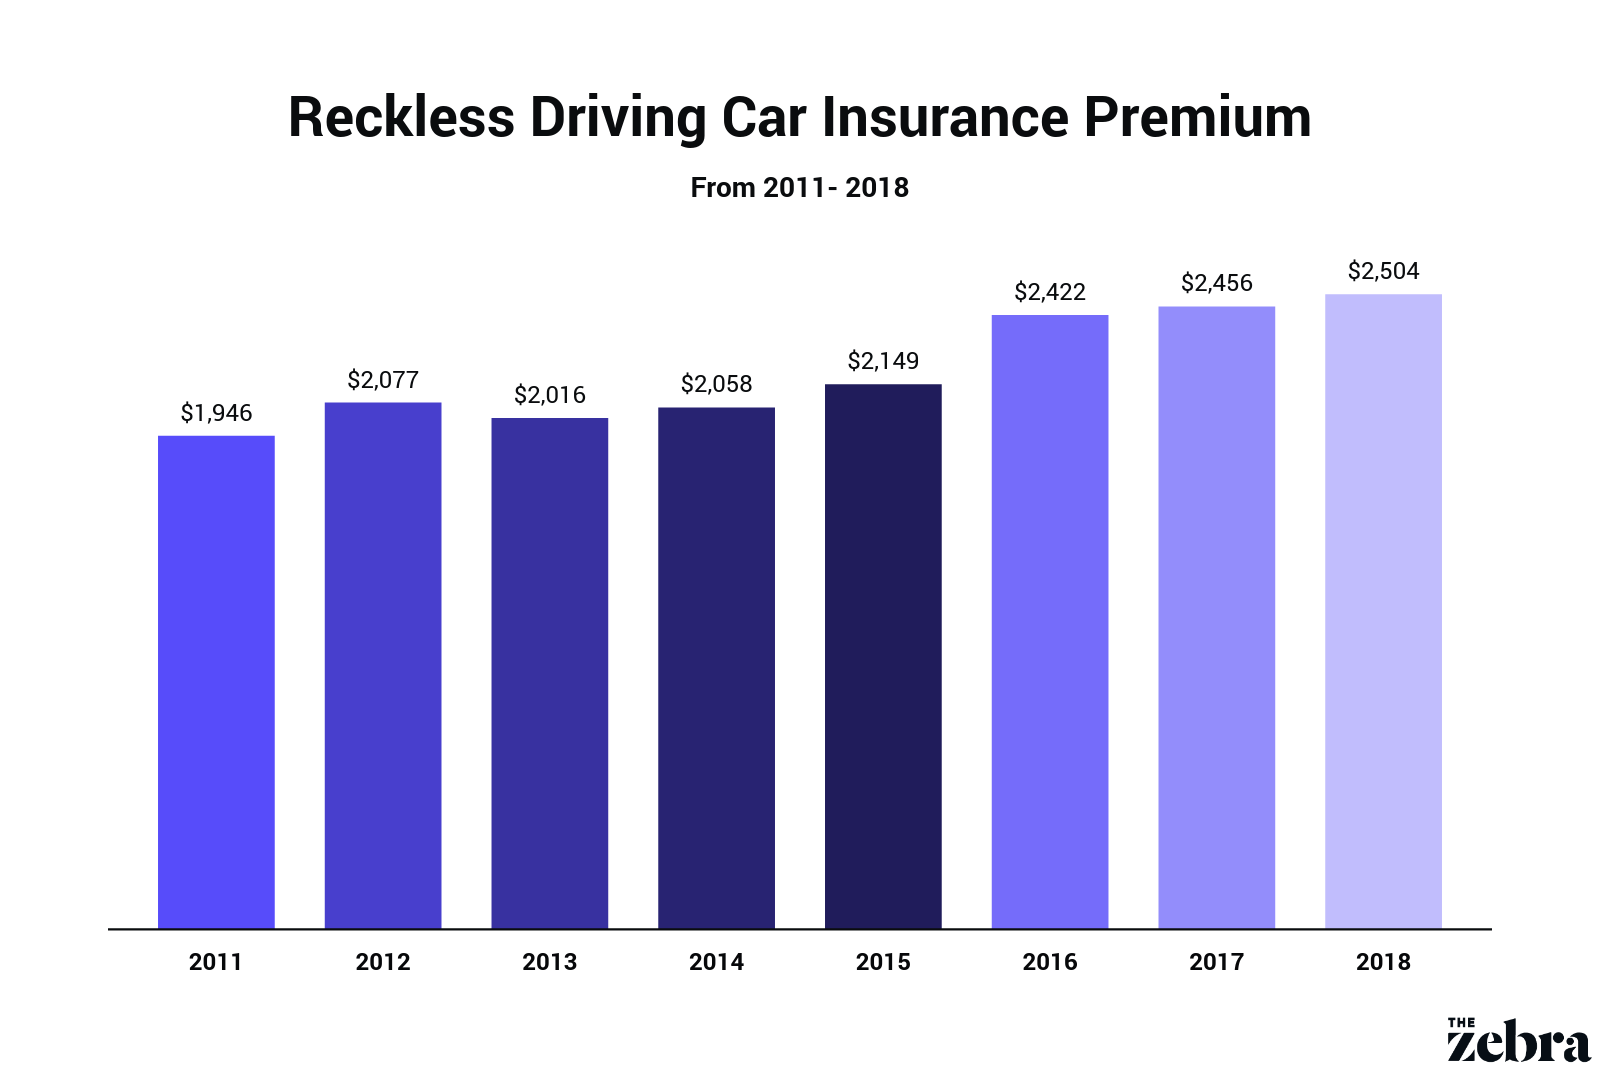 Bar graph displaying reckless driving car insurance premiums over time